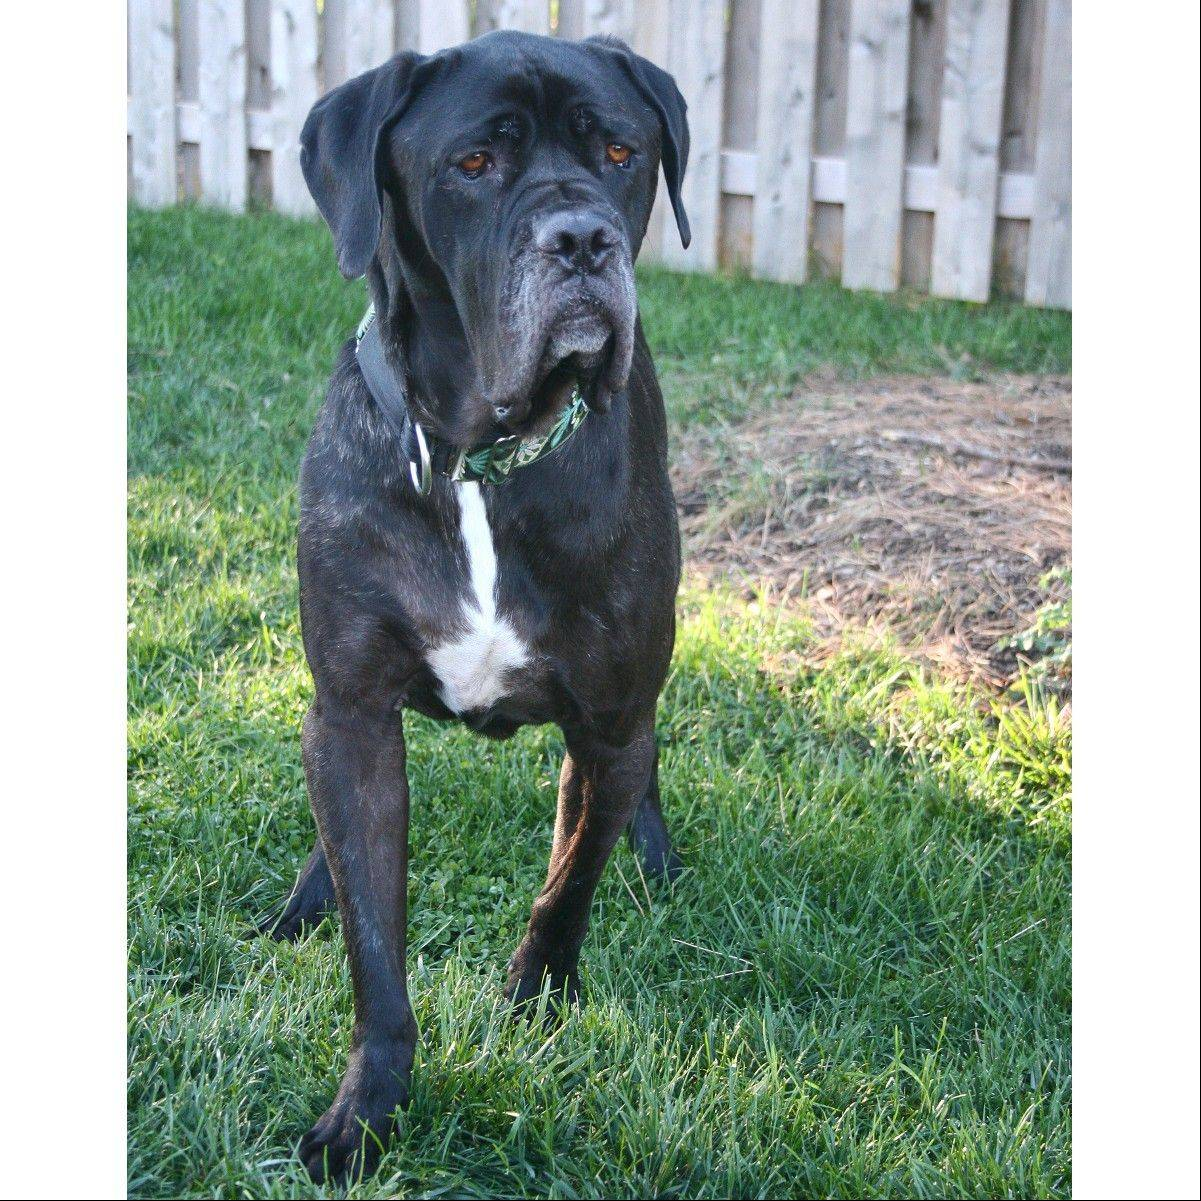 Hank is a male Mastiff who is about 5 years old and weighs around 100 pounds.